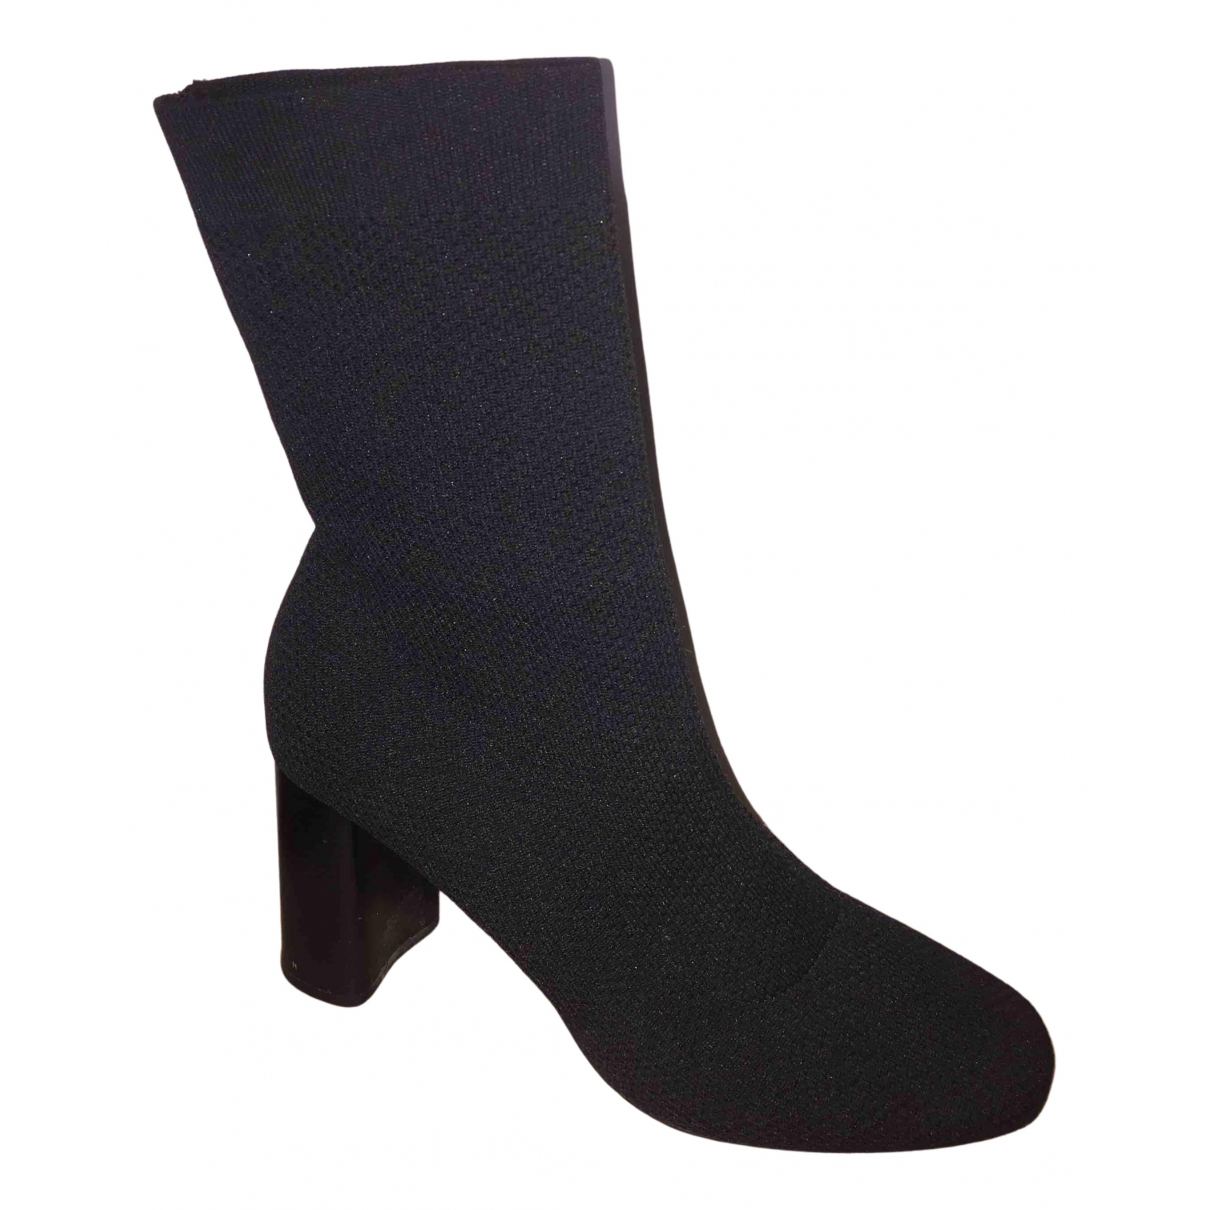 Zara N Black Ankle boots for Women 39 EU